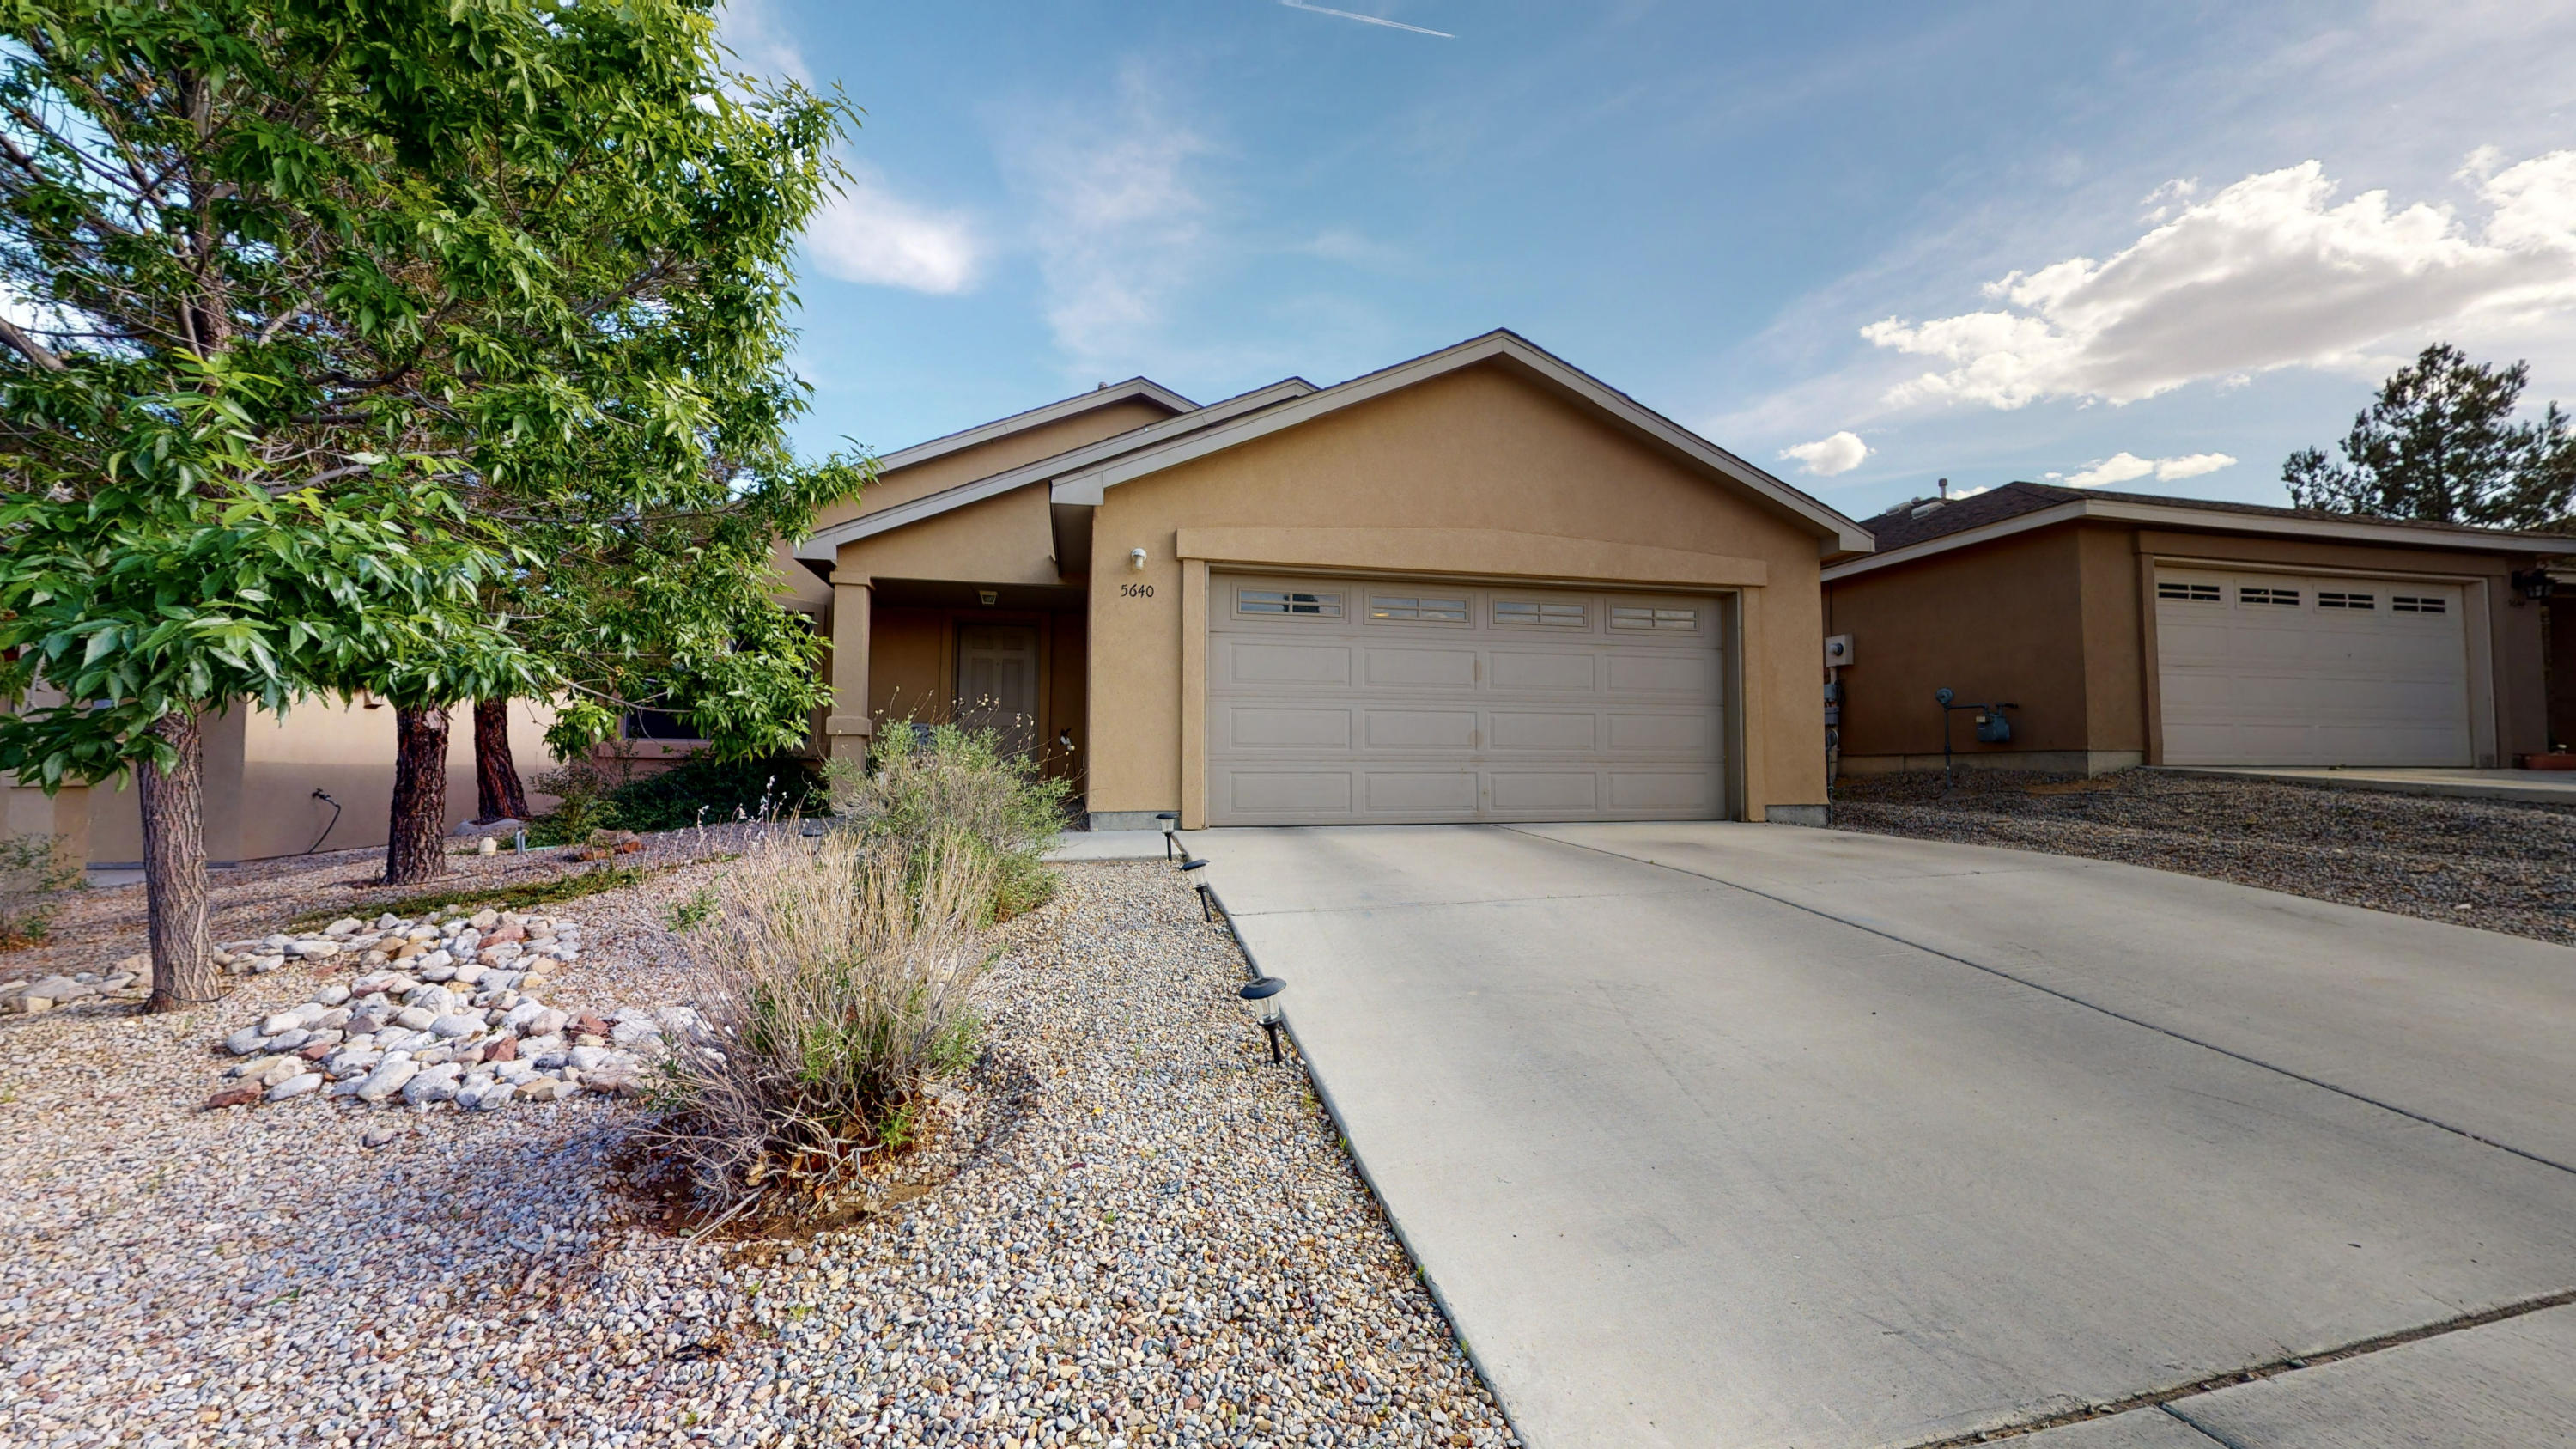 5640 BALD EAGLE Road NW, Albuquerque, NM 87114 - Albuquerque, NM real estate listing